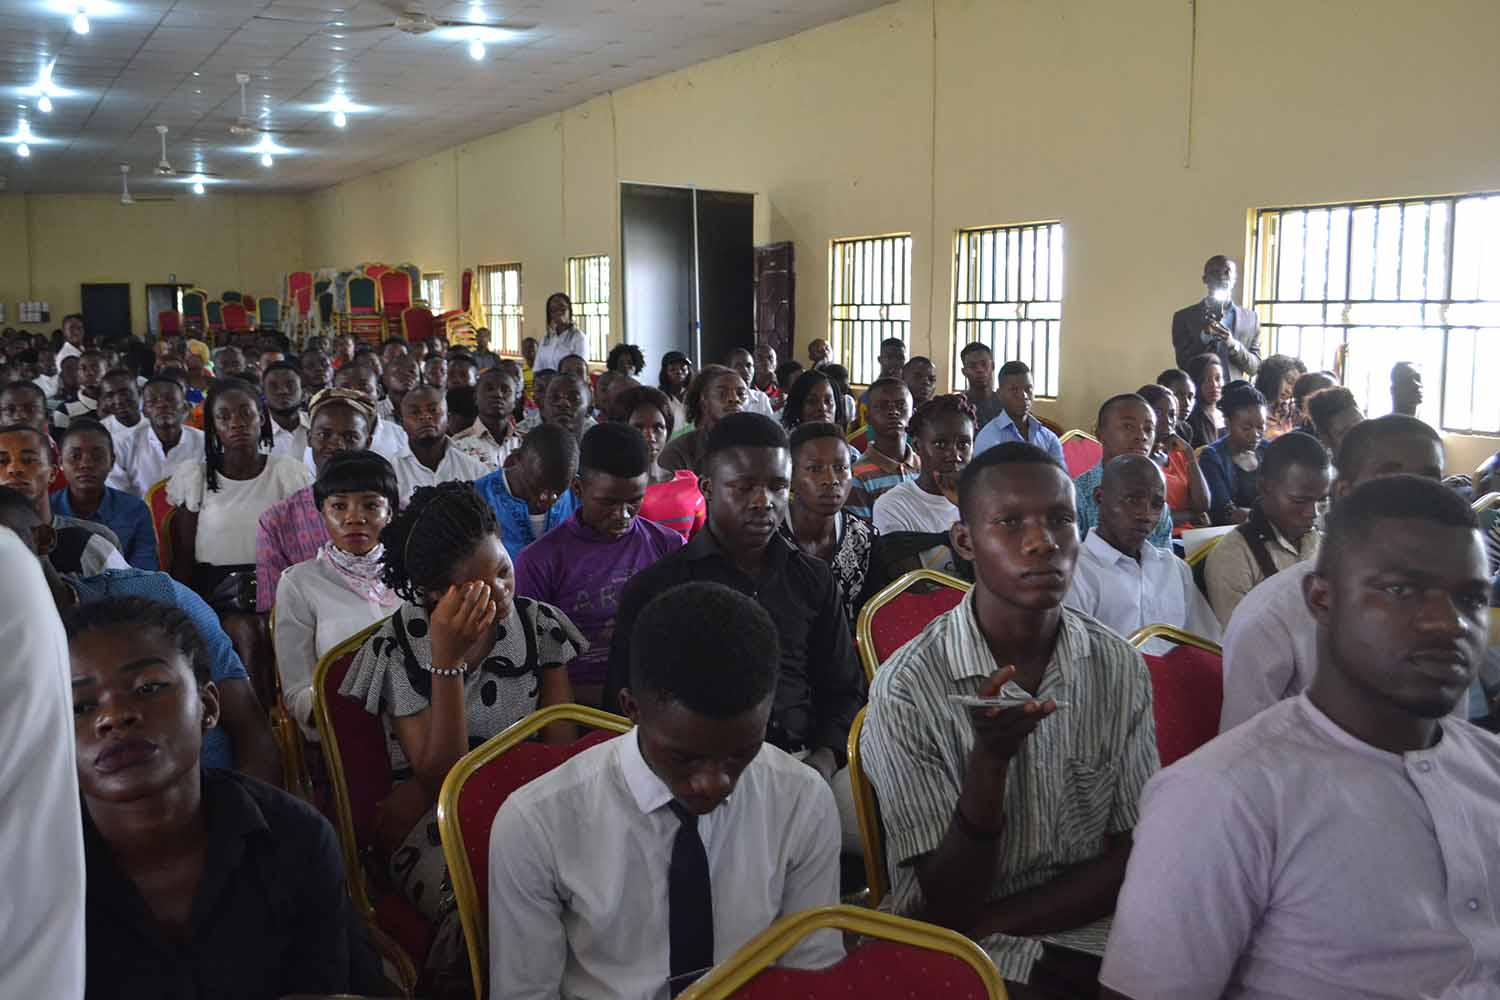 Cross section of the members of the audience